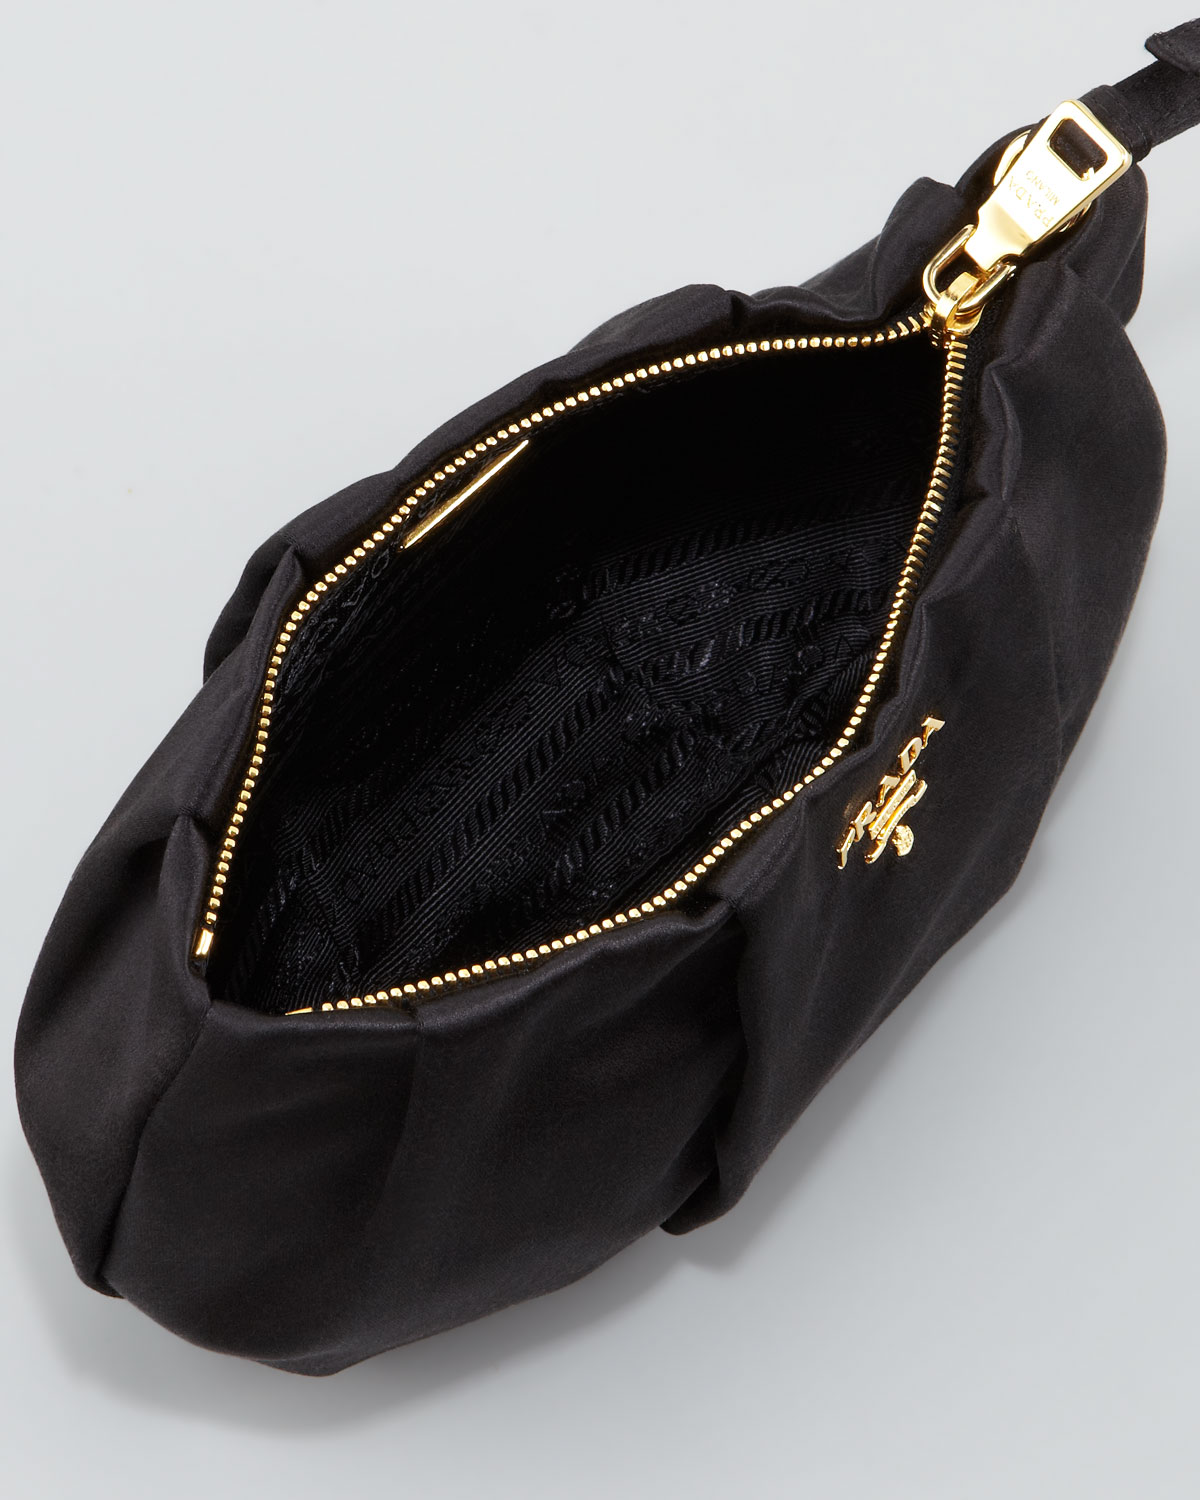 Prada Satin Wristlet Bag in Black (nero) | Lyst